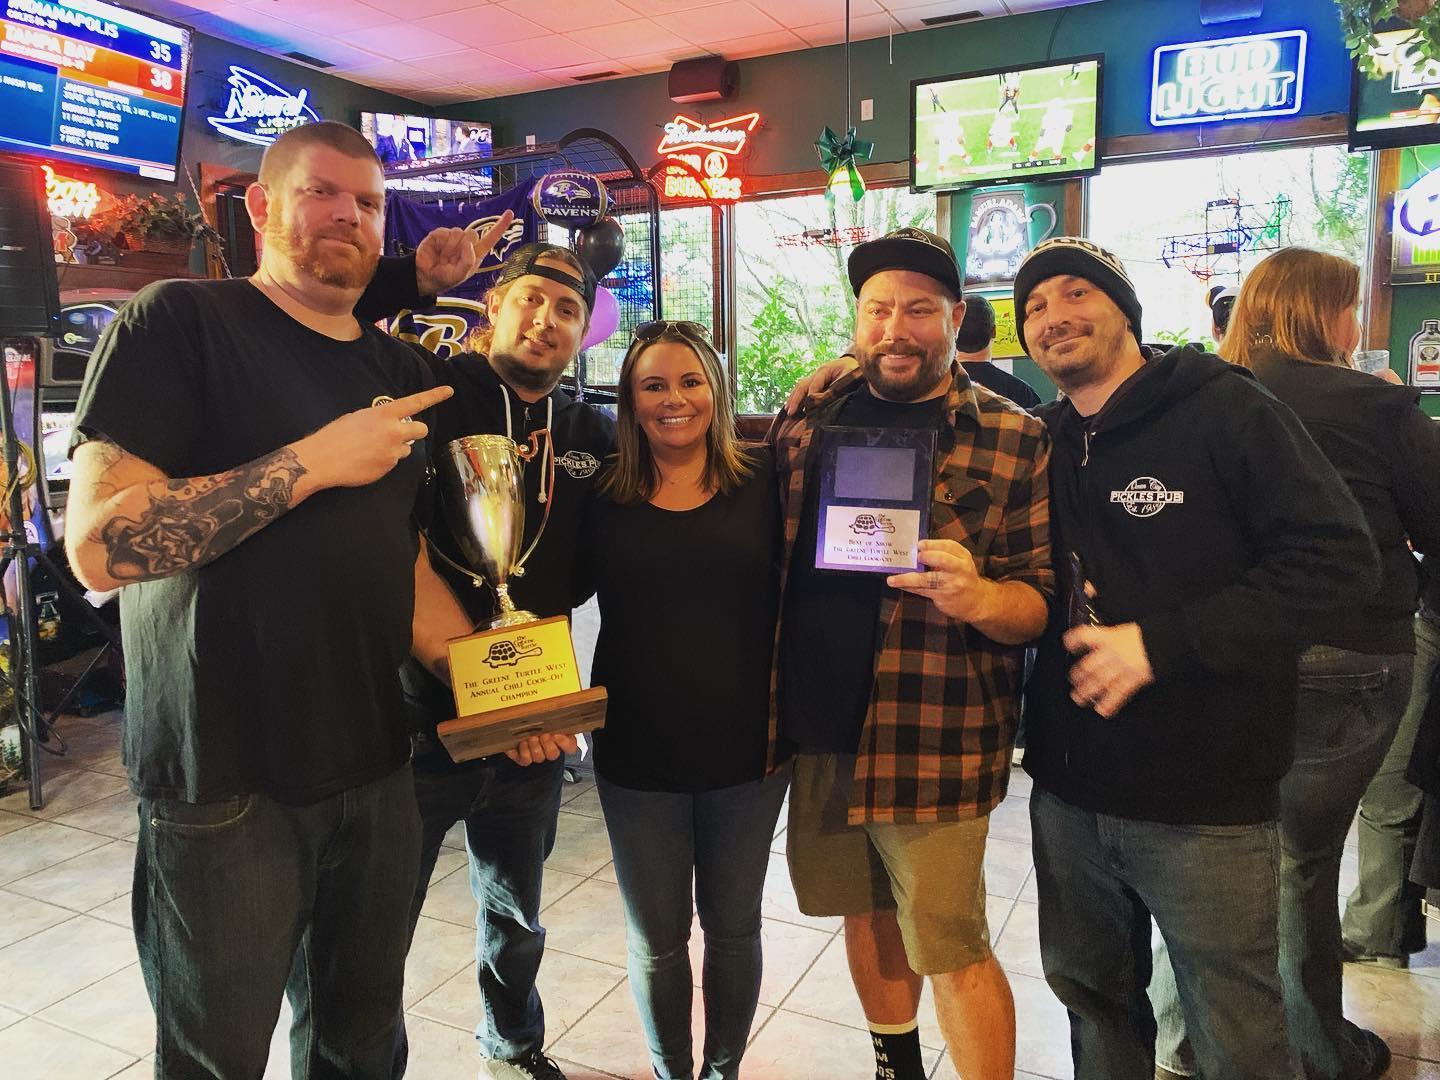 Pickles Pub Repeats At Chili Cookoff Fundraiser